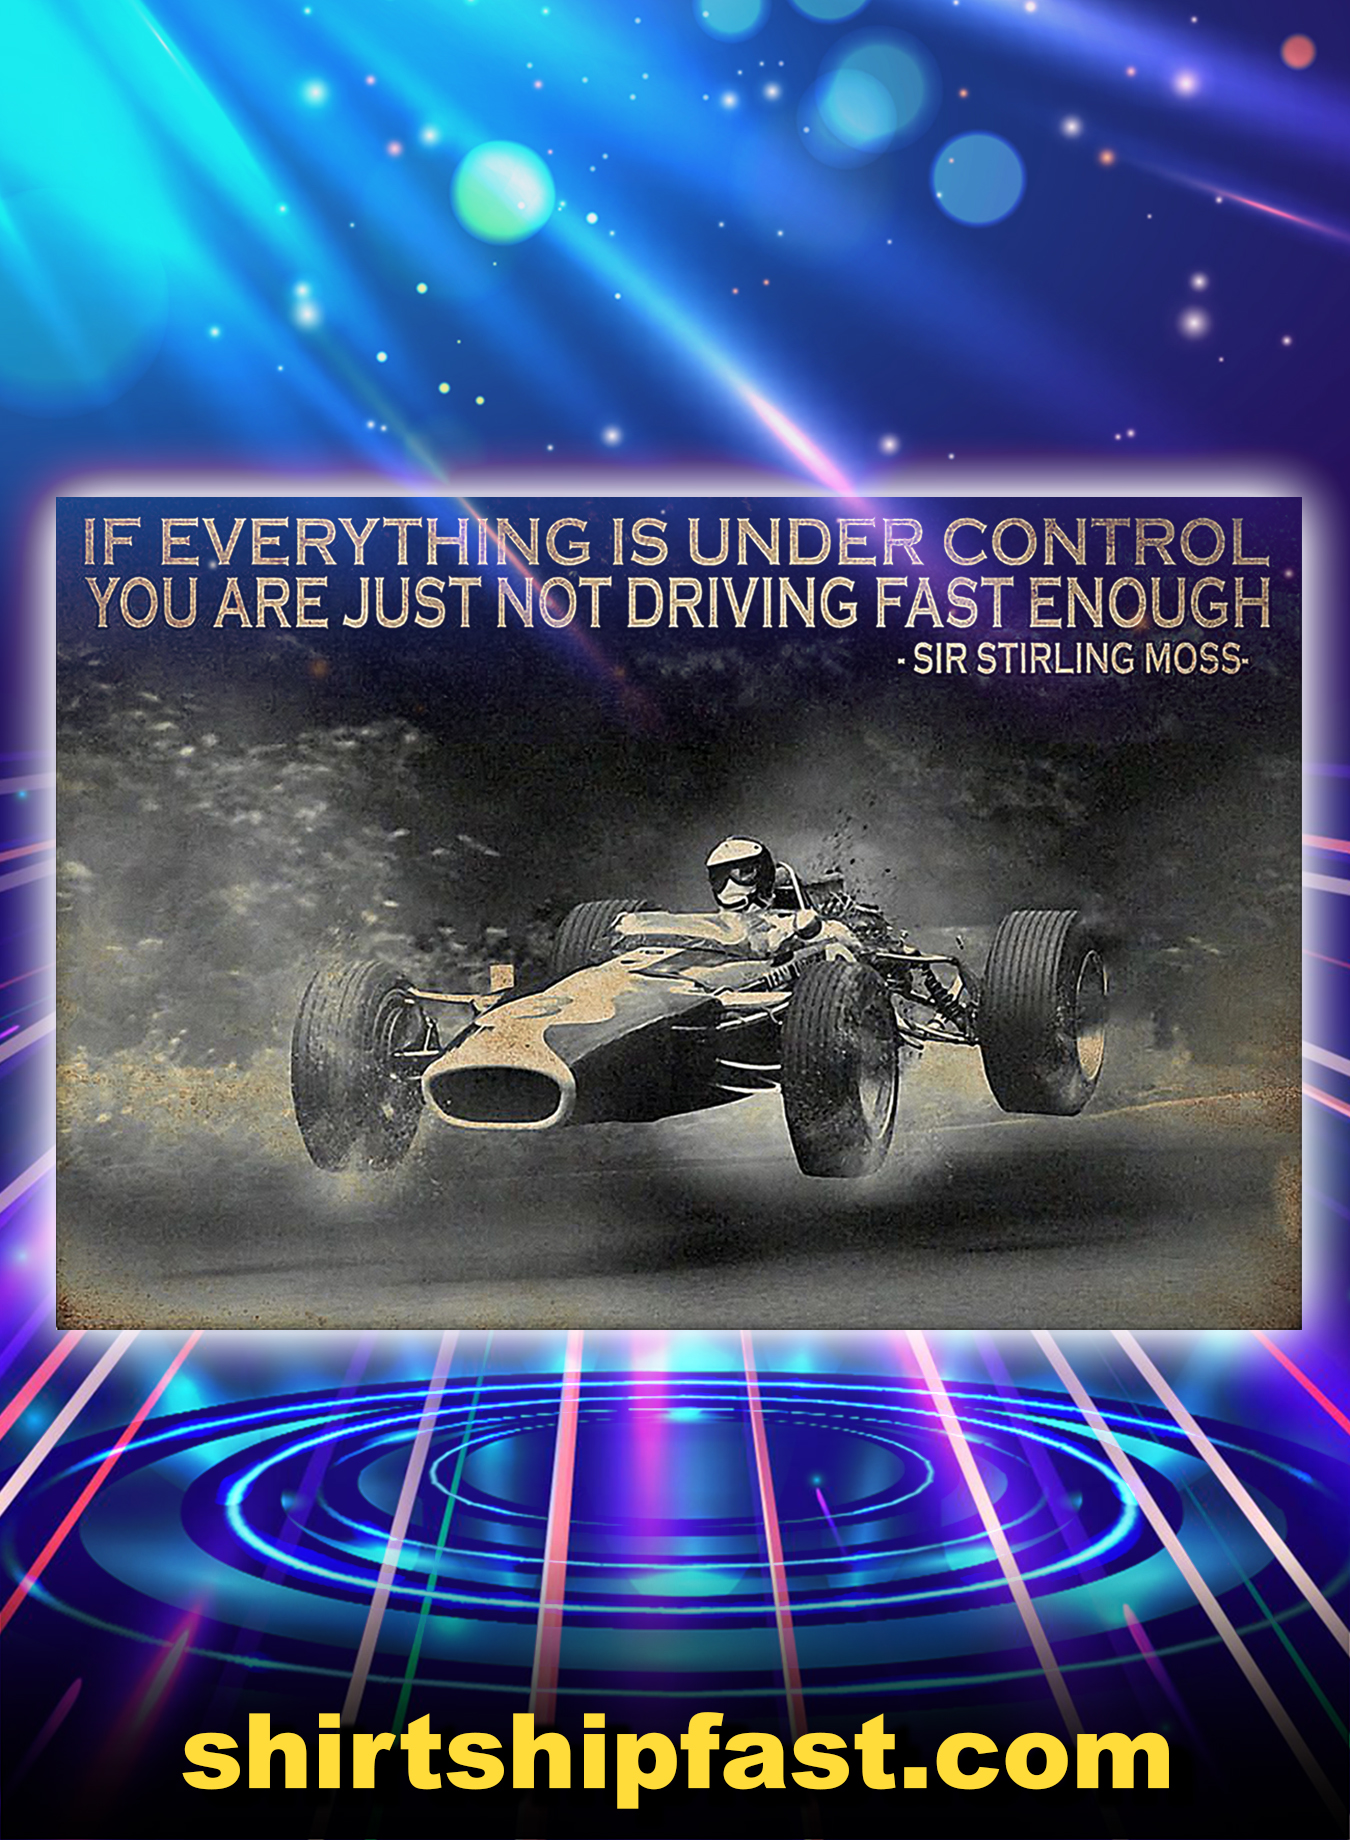 Motorsport racing if everything is under control poster - A3